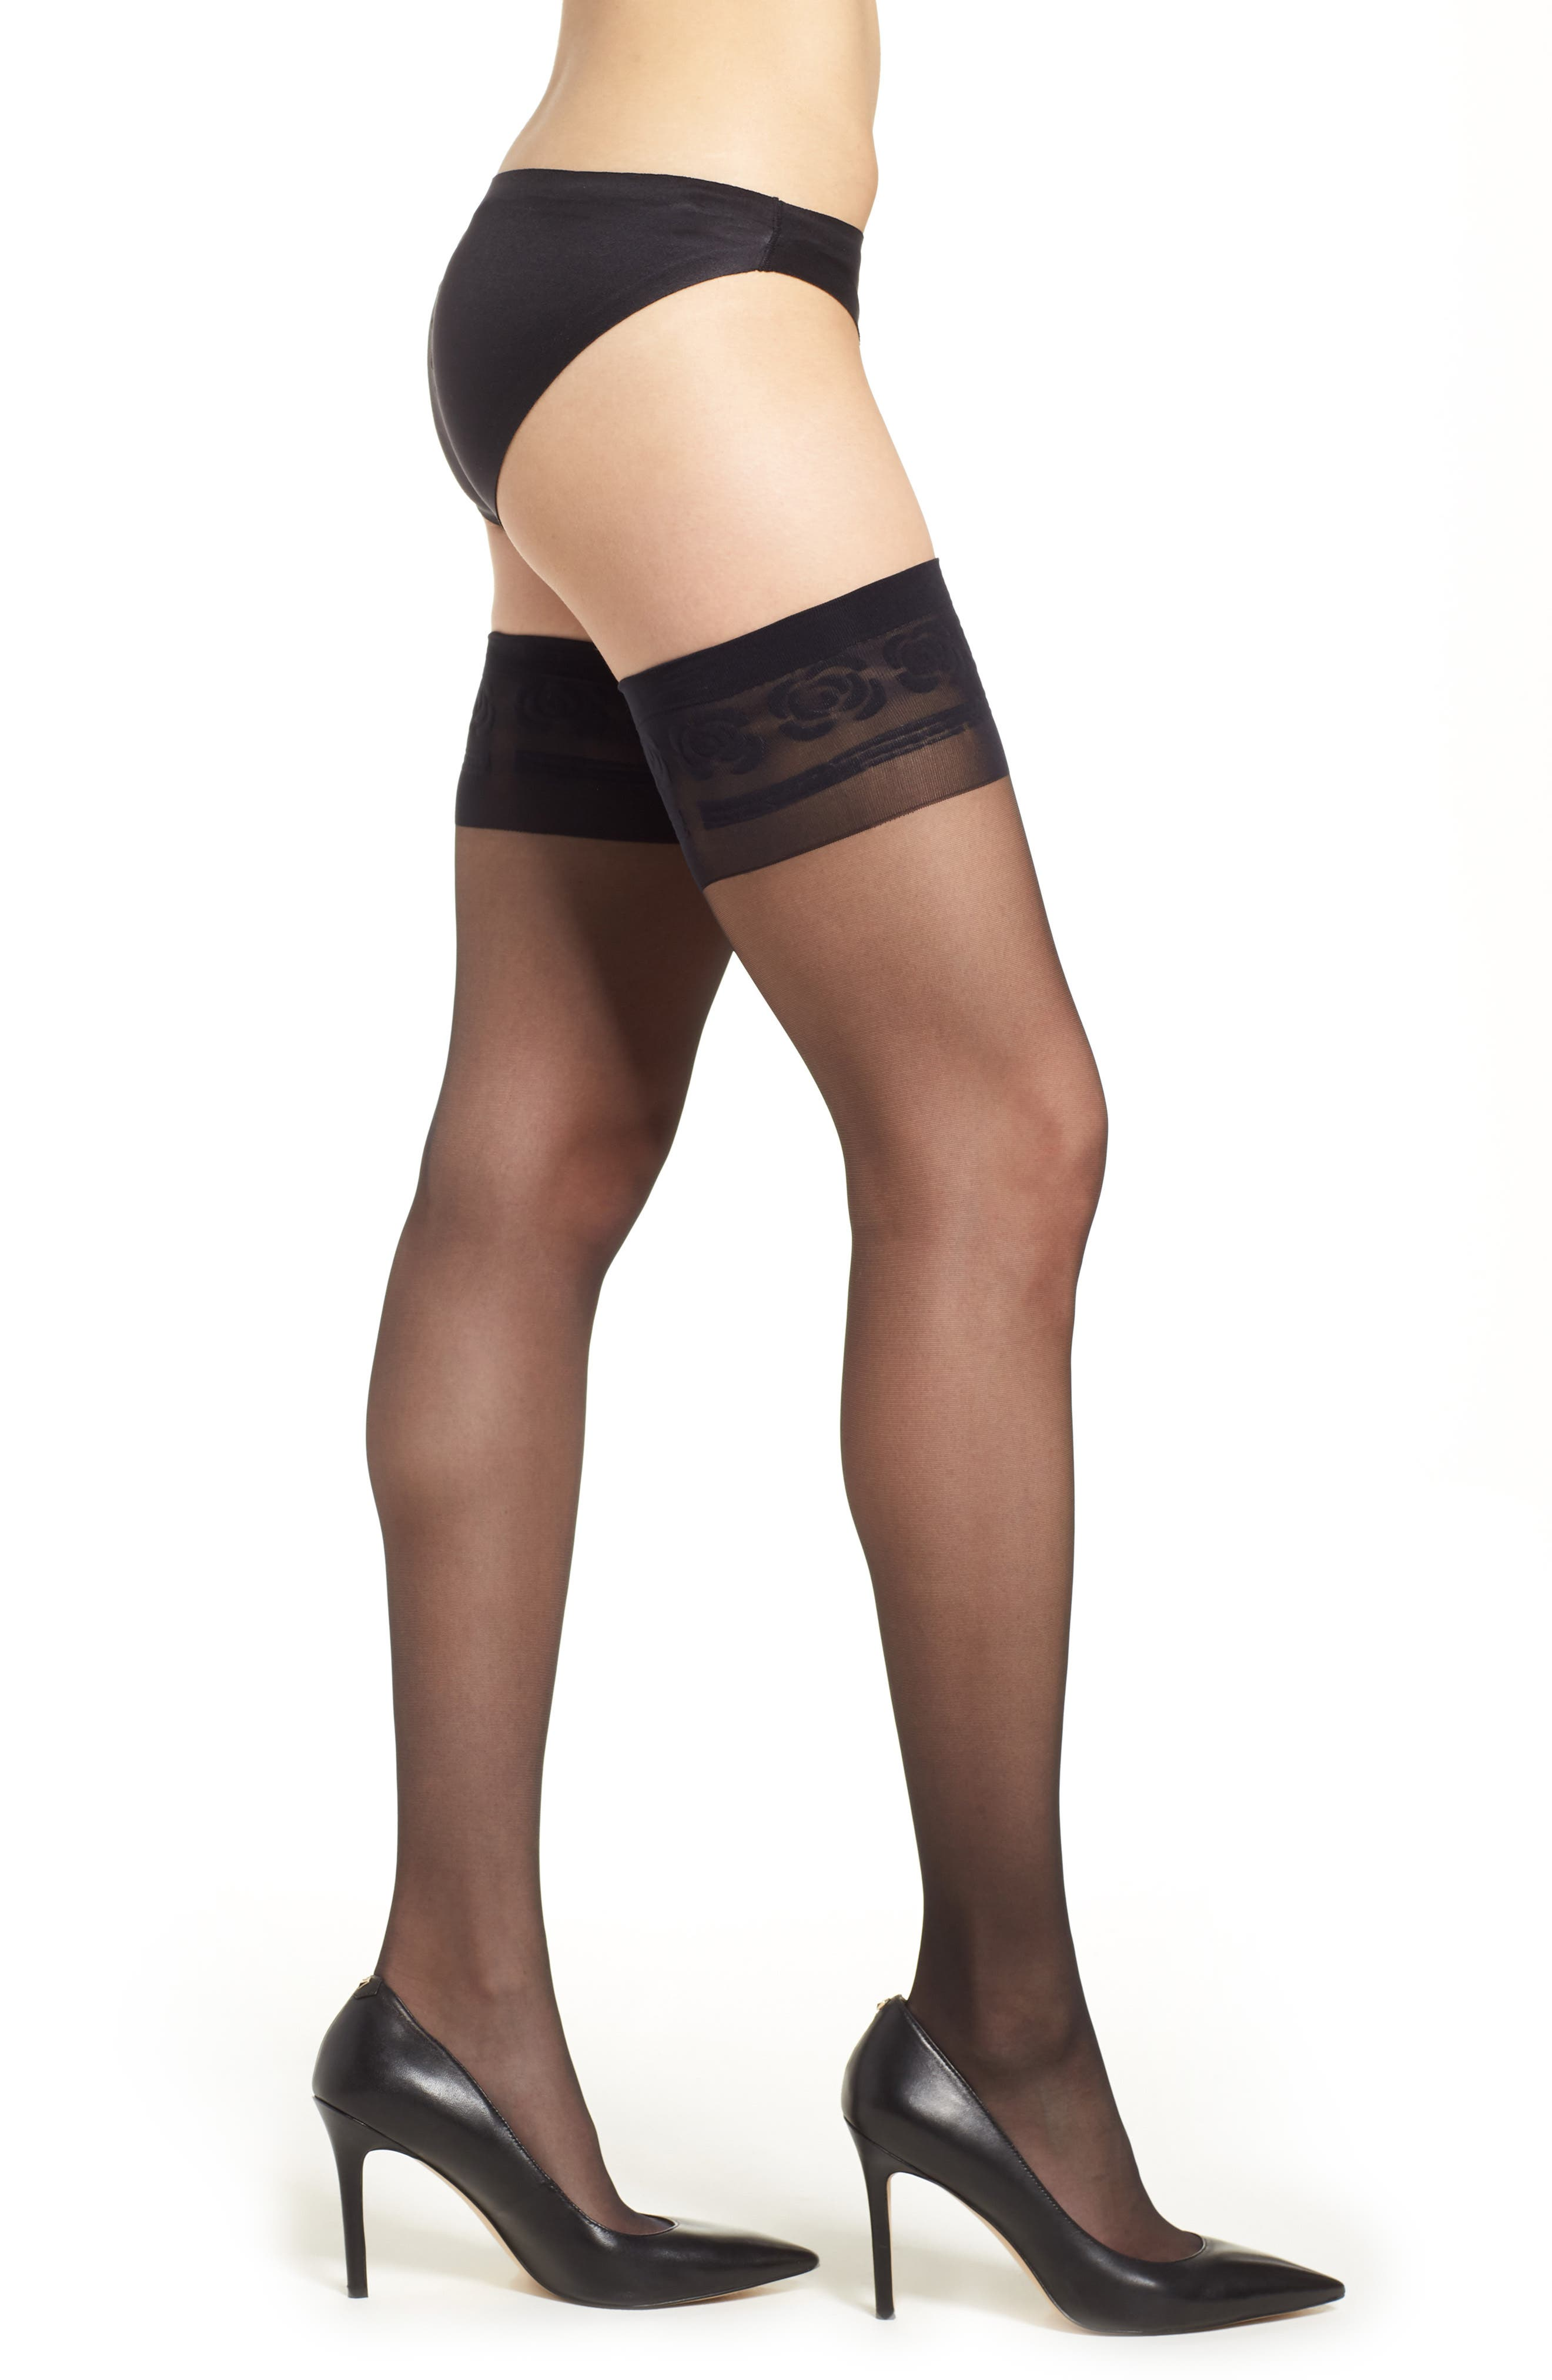 Component Sheer Stay-Up Stockings,                             Main thumbnail 1, color,                             001